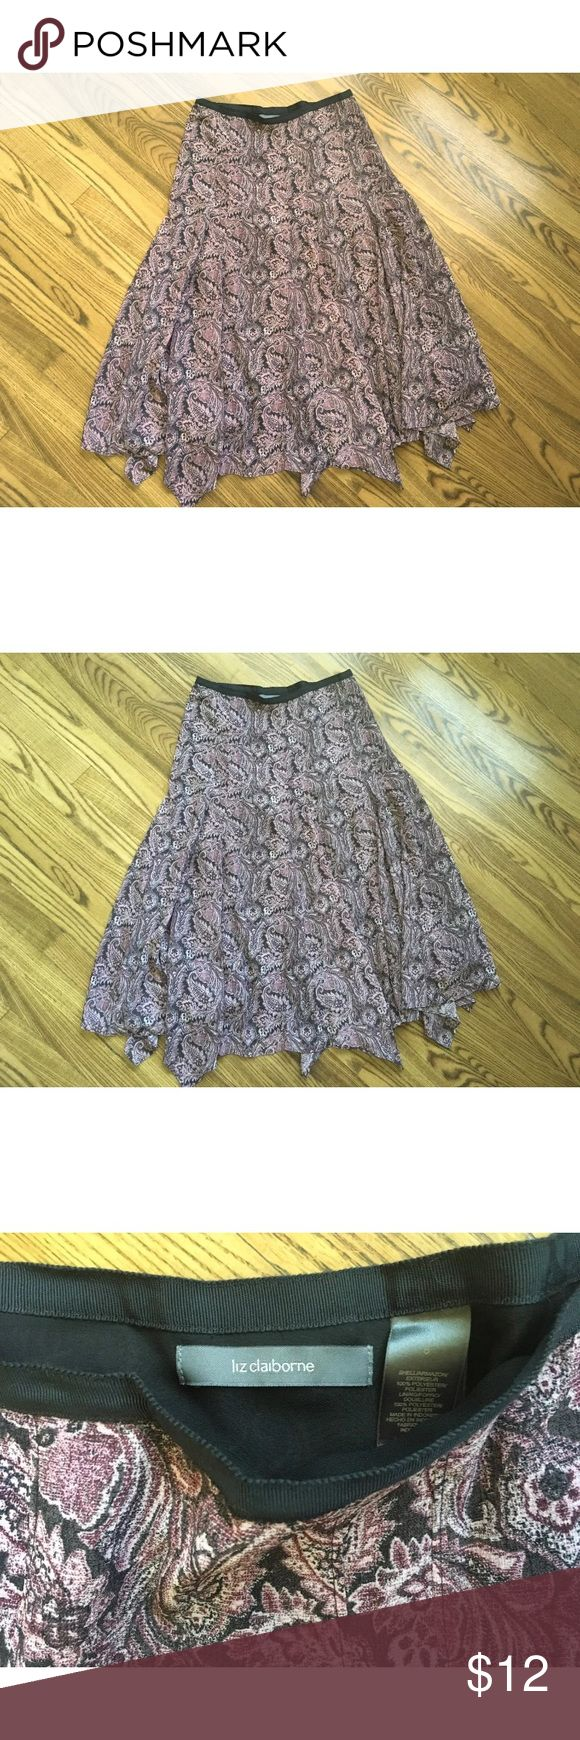 """Liz Claiborne Skirt Sz 8 MEASUREMENTS: (Measurements are in inches, laid flat, so double for all the way around when needed)  Waist: 15.75""""  Length: 30-33""""   Brand: Liz Claiborne  Size: 8 (Please check measurements above as sizes vary from brand to brand.)  Condition: excellent gently used condition  Color: pink, black  Brief Detail: handkerchief hem Liz Claiborne Skirts Asymmetrical"""